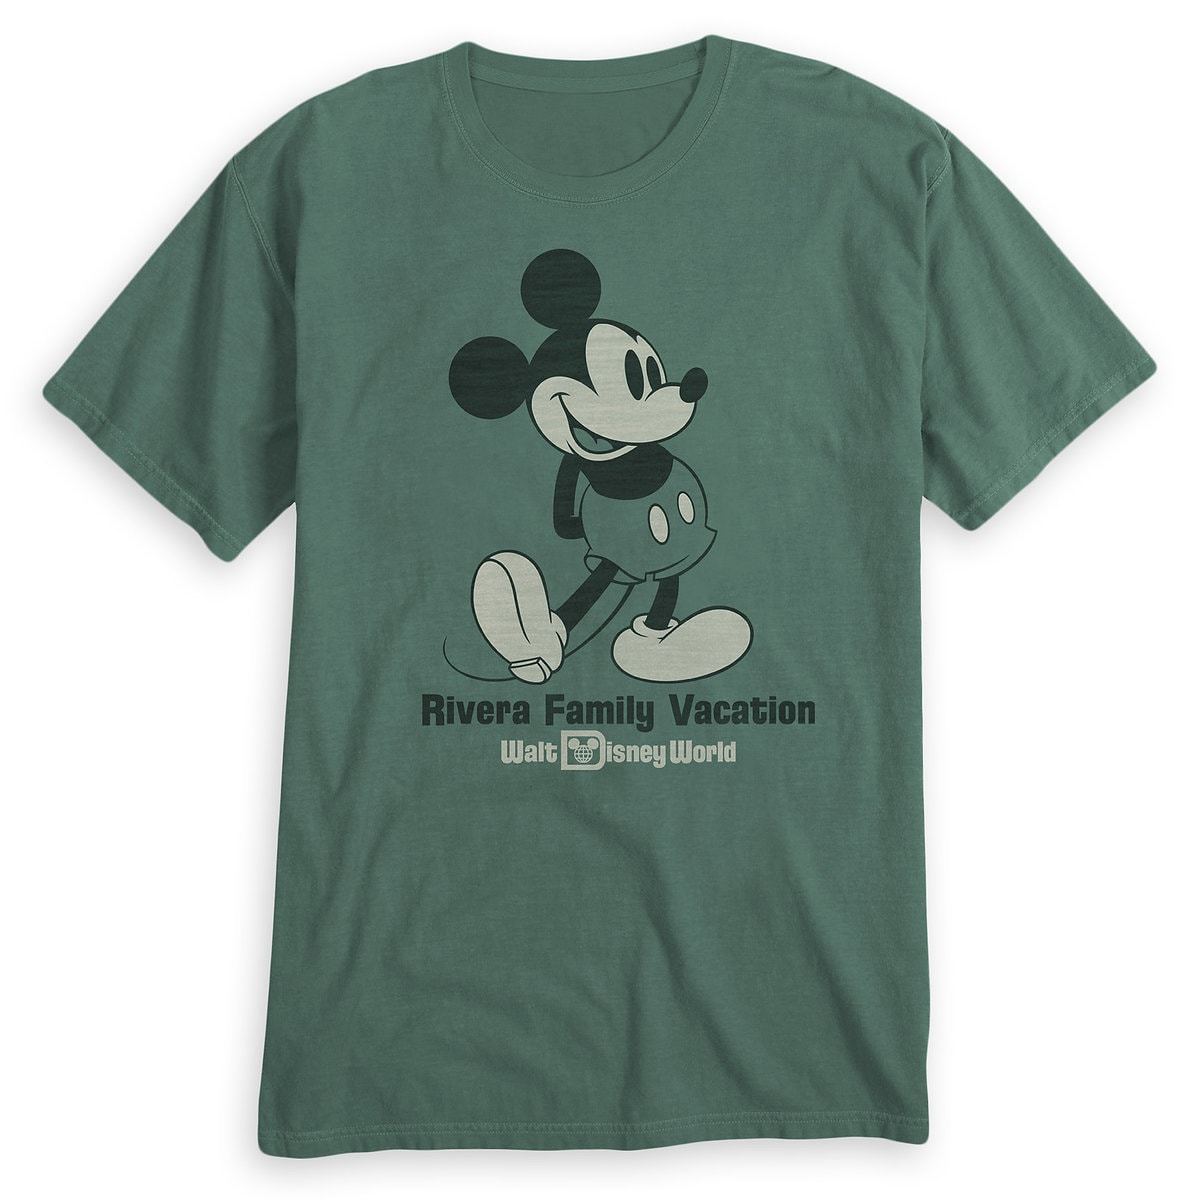 3540160d7 Product Image of Adults' Mickey Mouse Family Vacation T-Shirt - Walt Disney  World